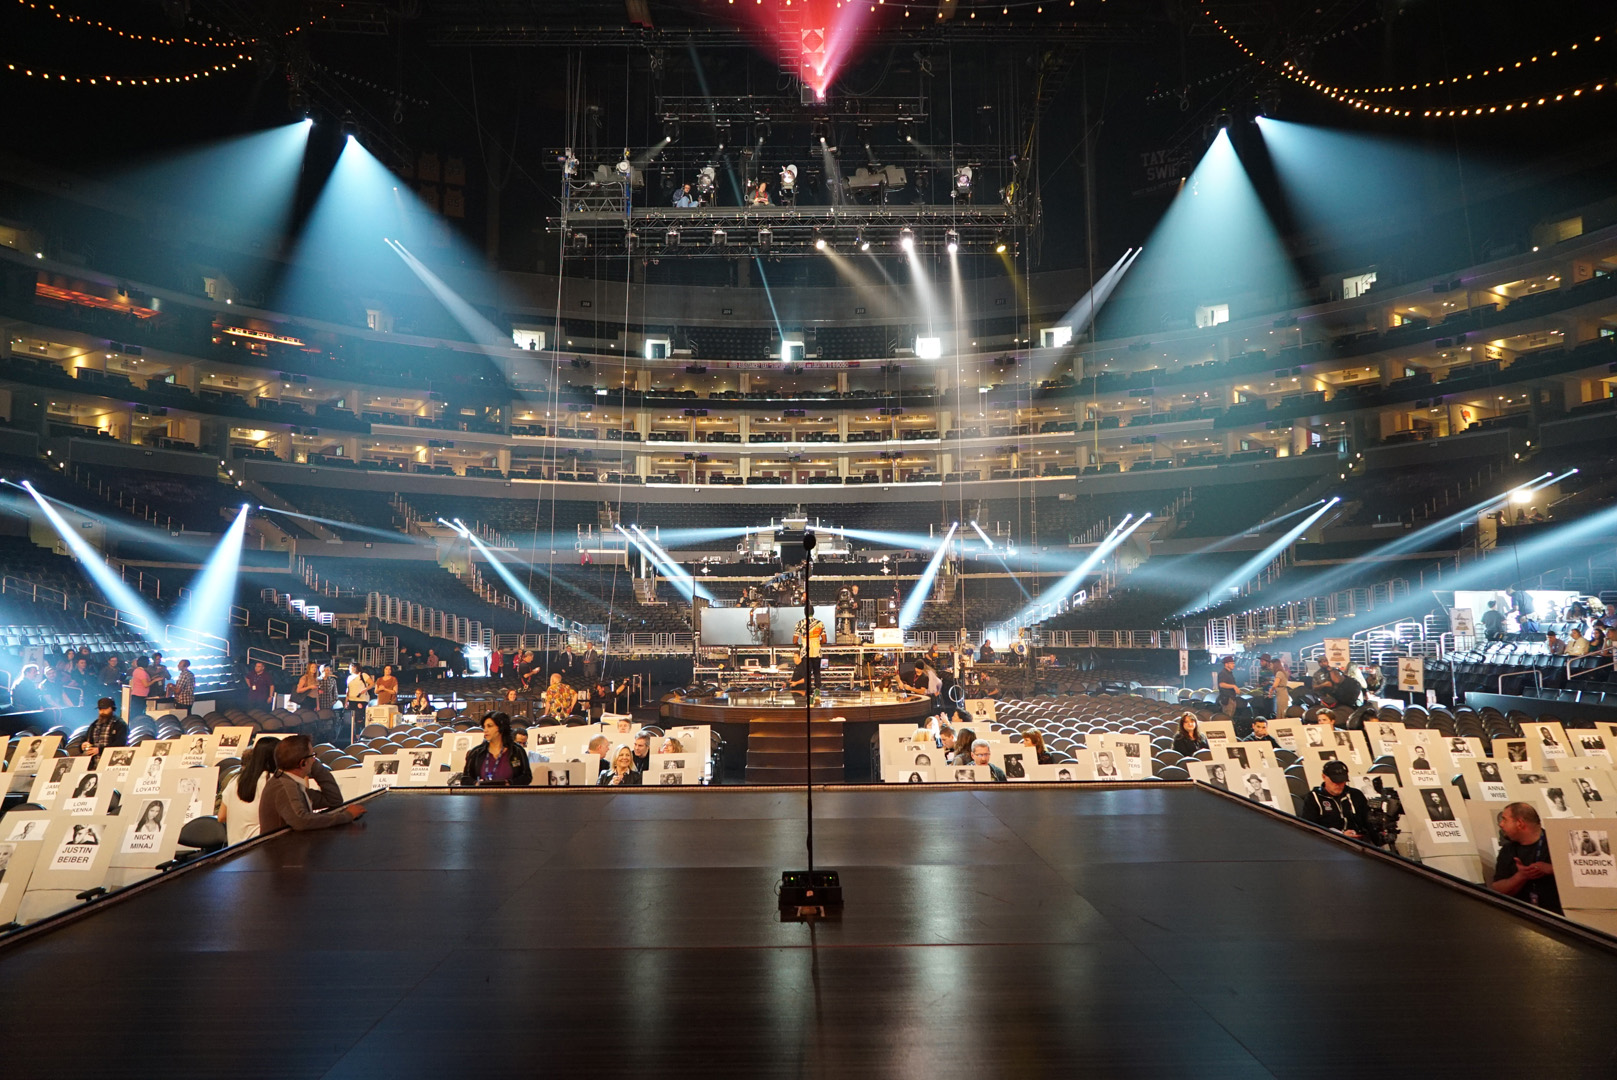 Take a peek backstage at The 58th Annual GRAMMY Awards!